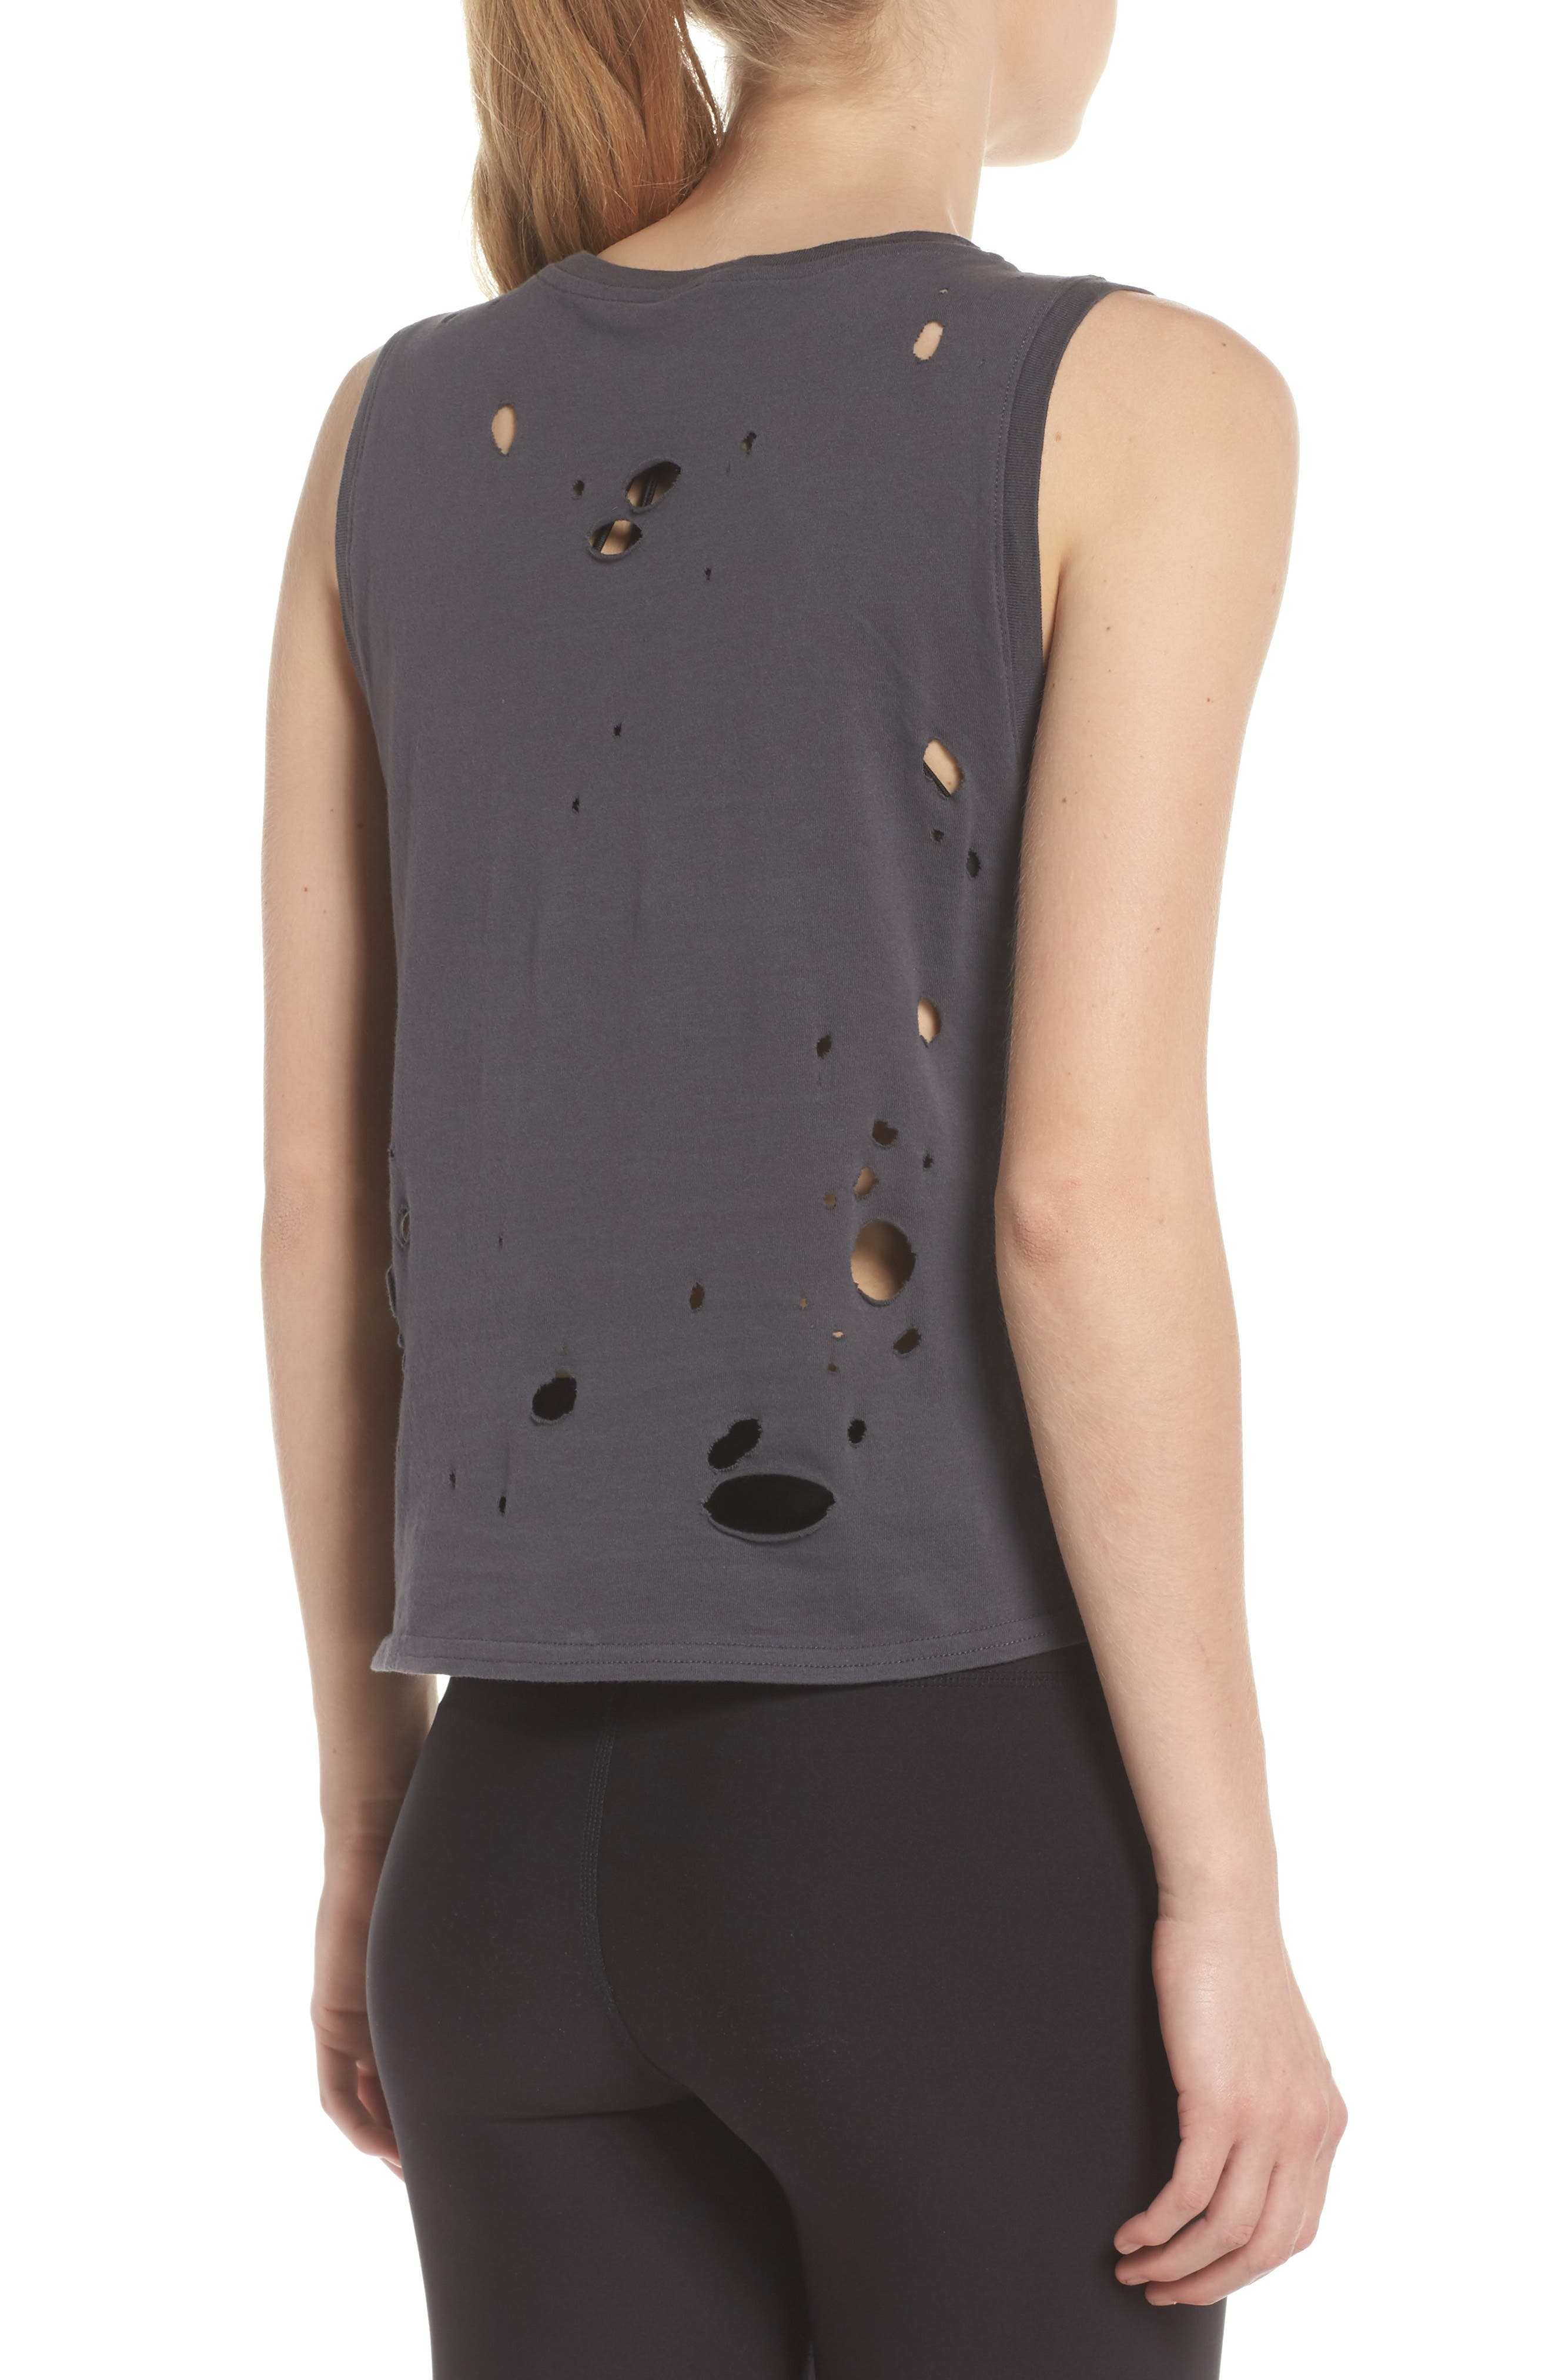 Harley Muscle Tank,                             Alternate thumbnail 2, color,                             Anthracite/ Distressed Holes